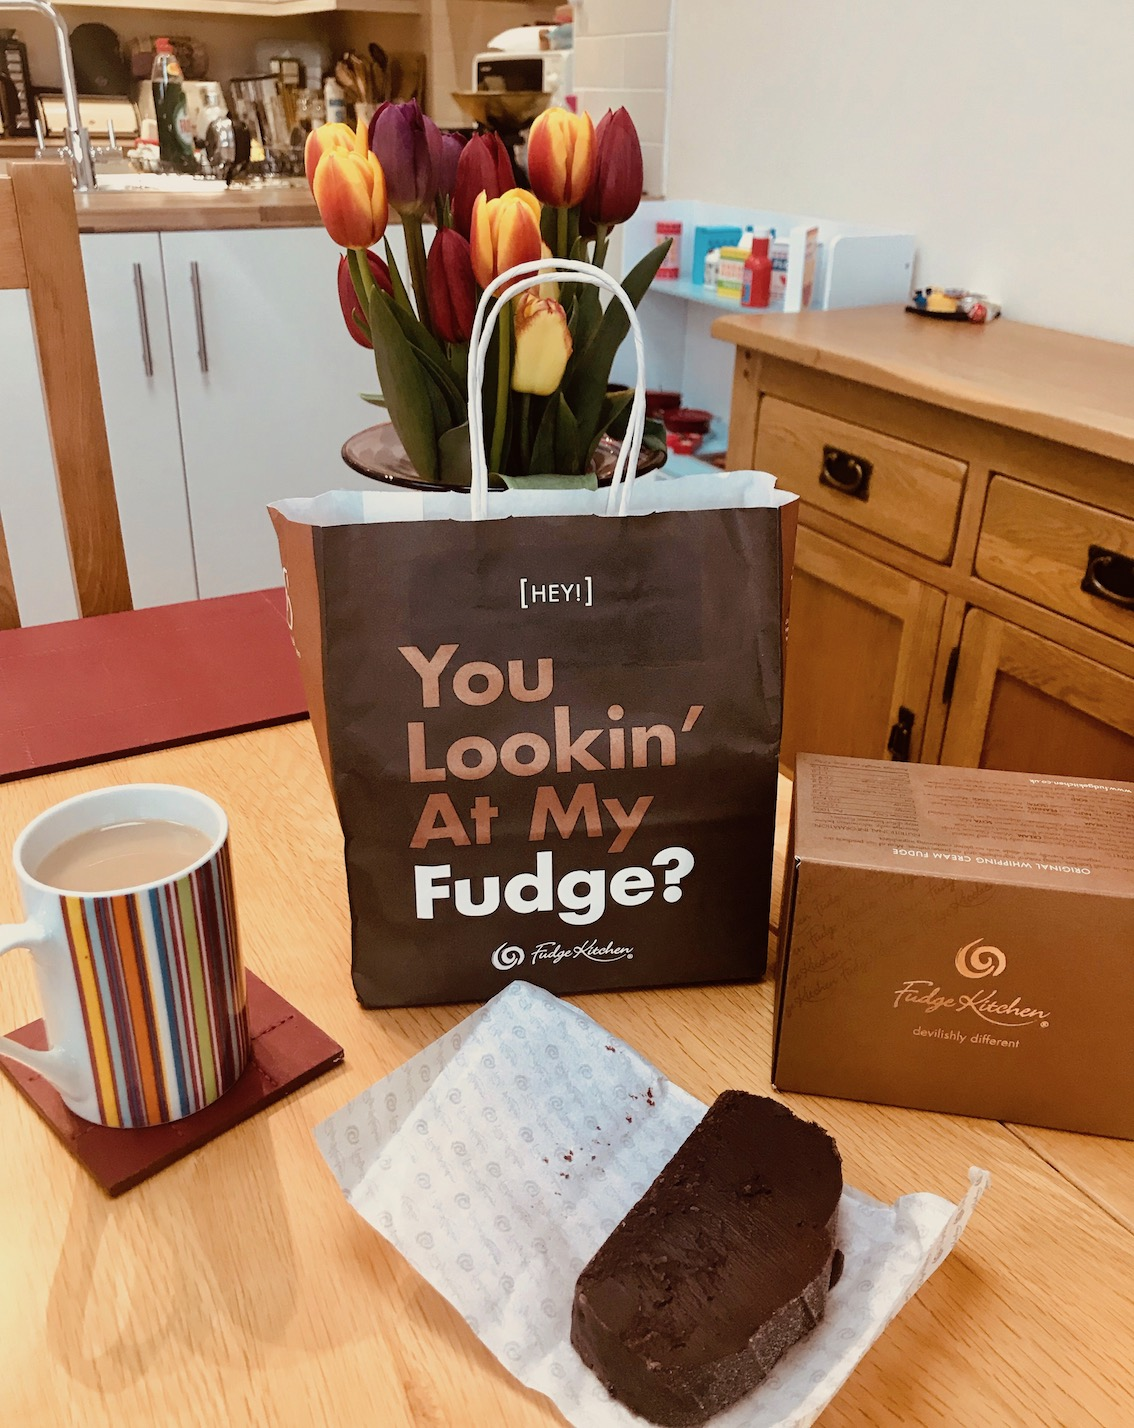 Takeaway bag Fudge Kitchen Cambridge.